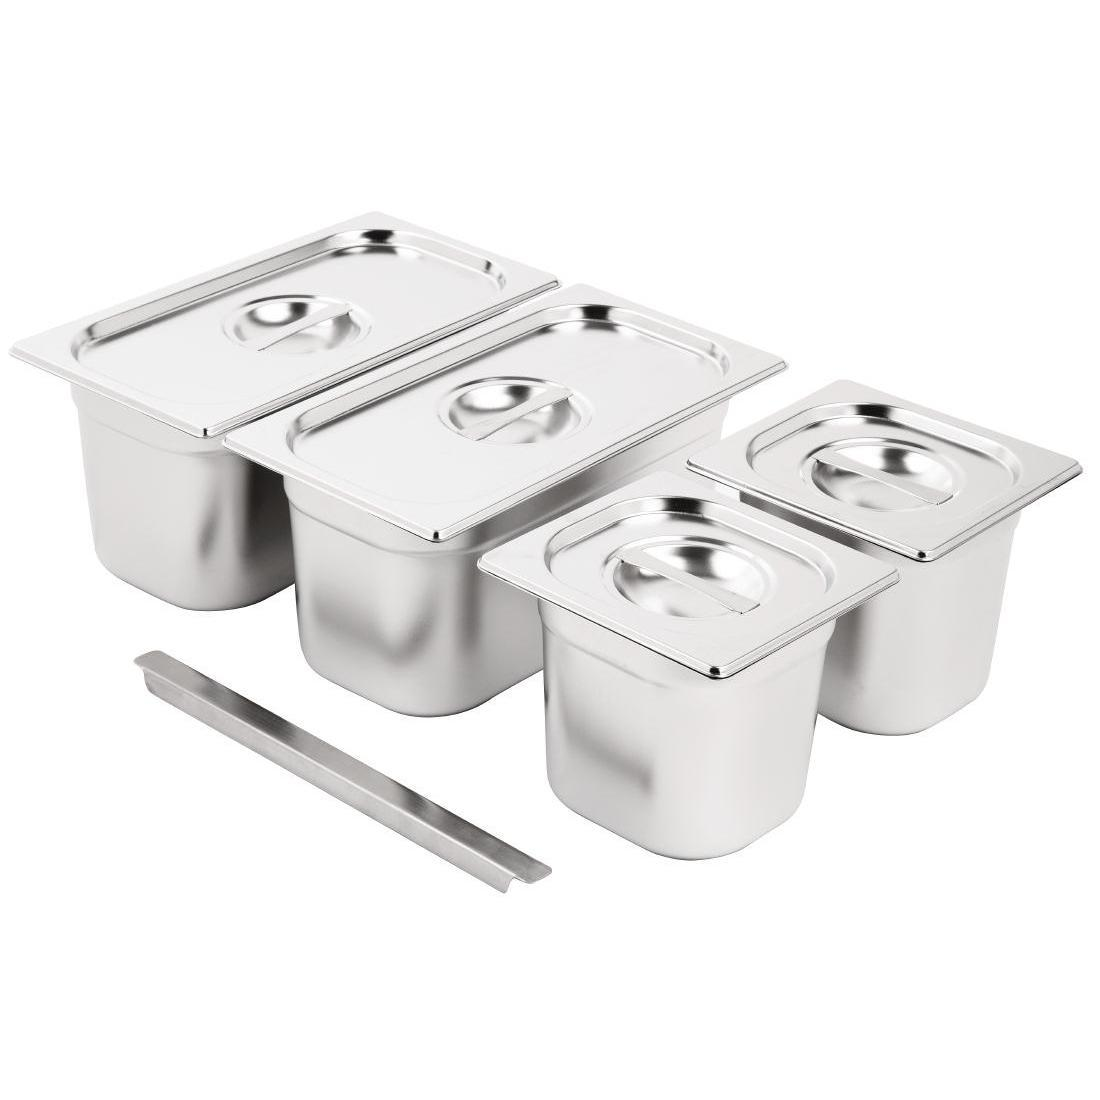 Vogue Stainless Steel Gastronorm Pan Set 2x 1/3  2 x 1/6 with Lids - SA249